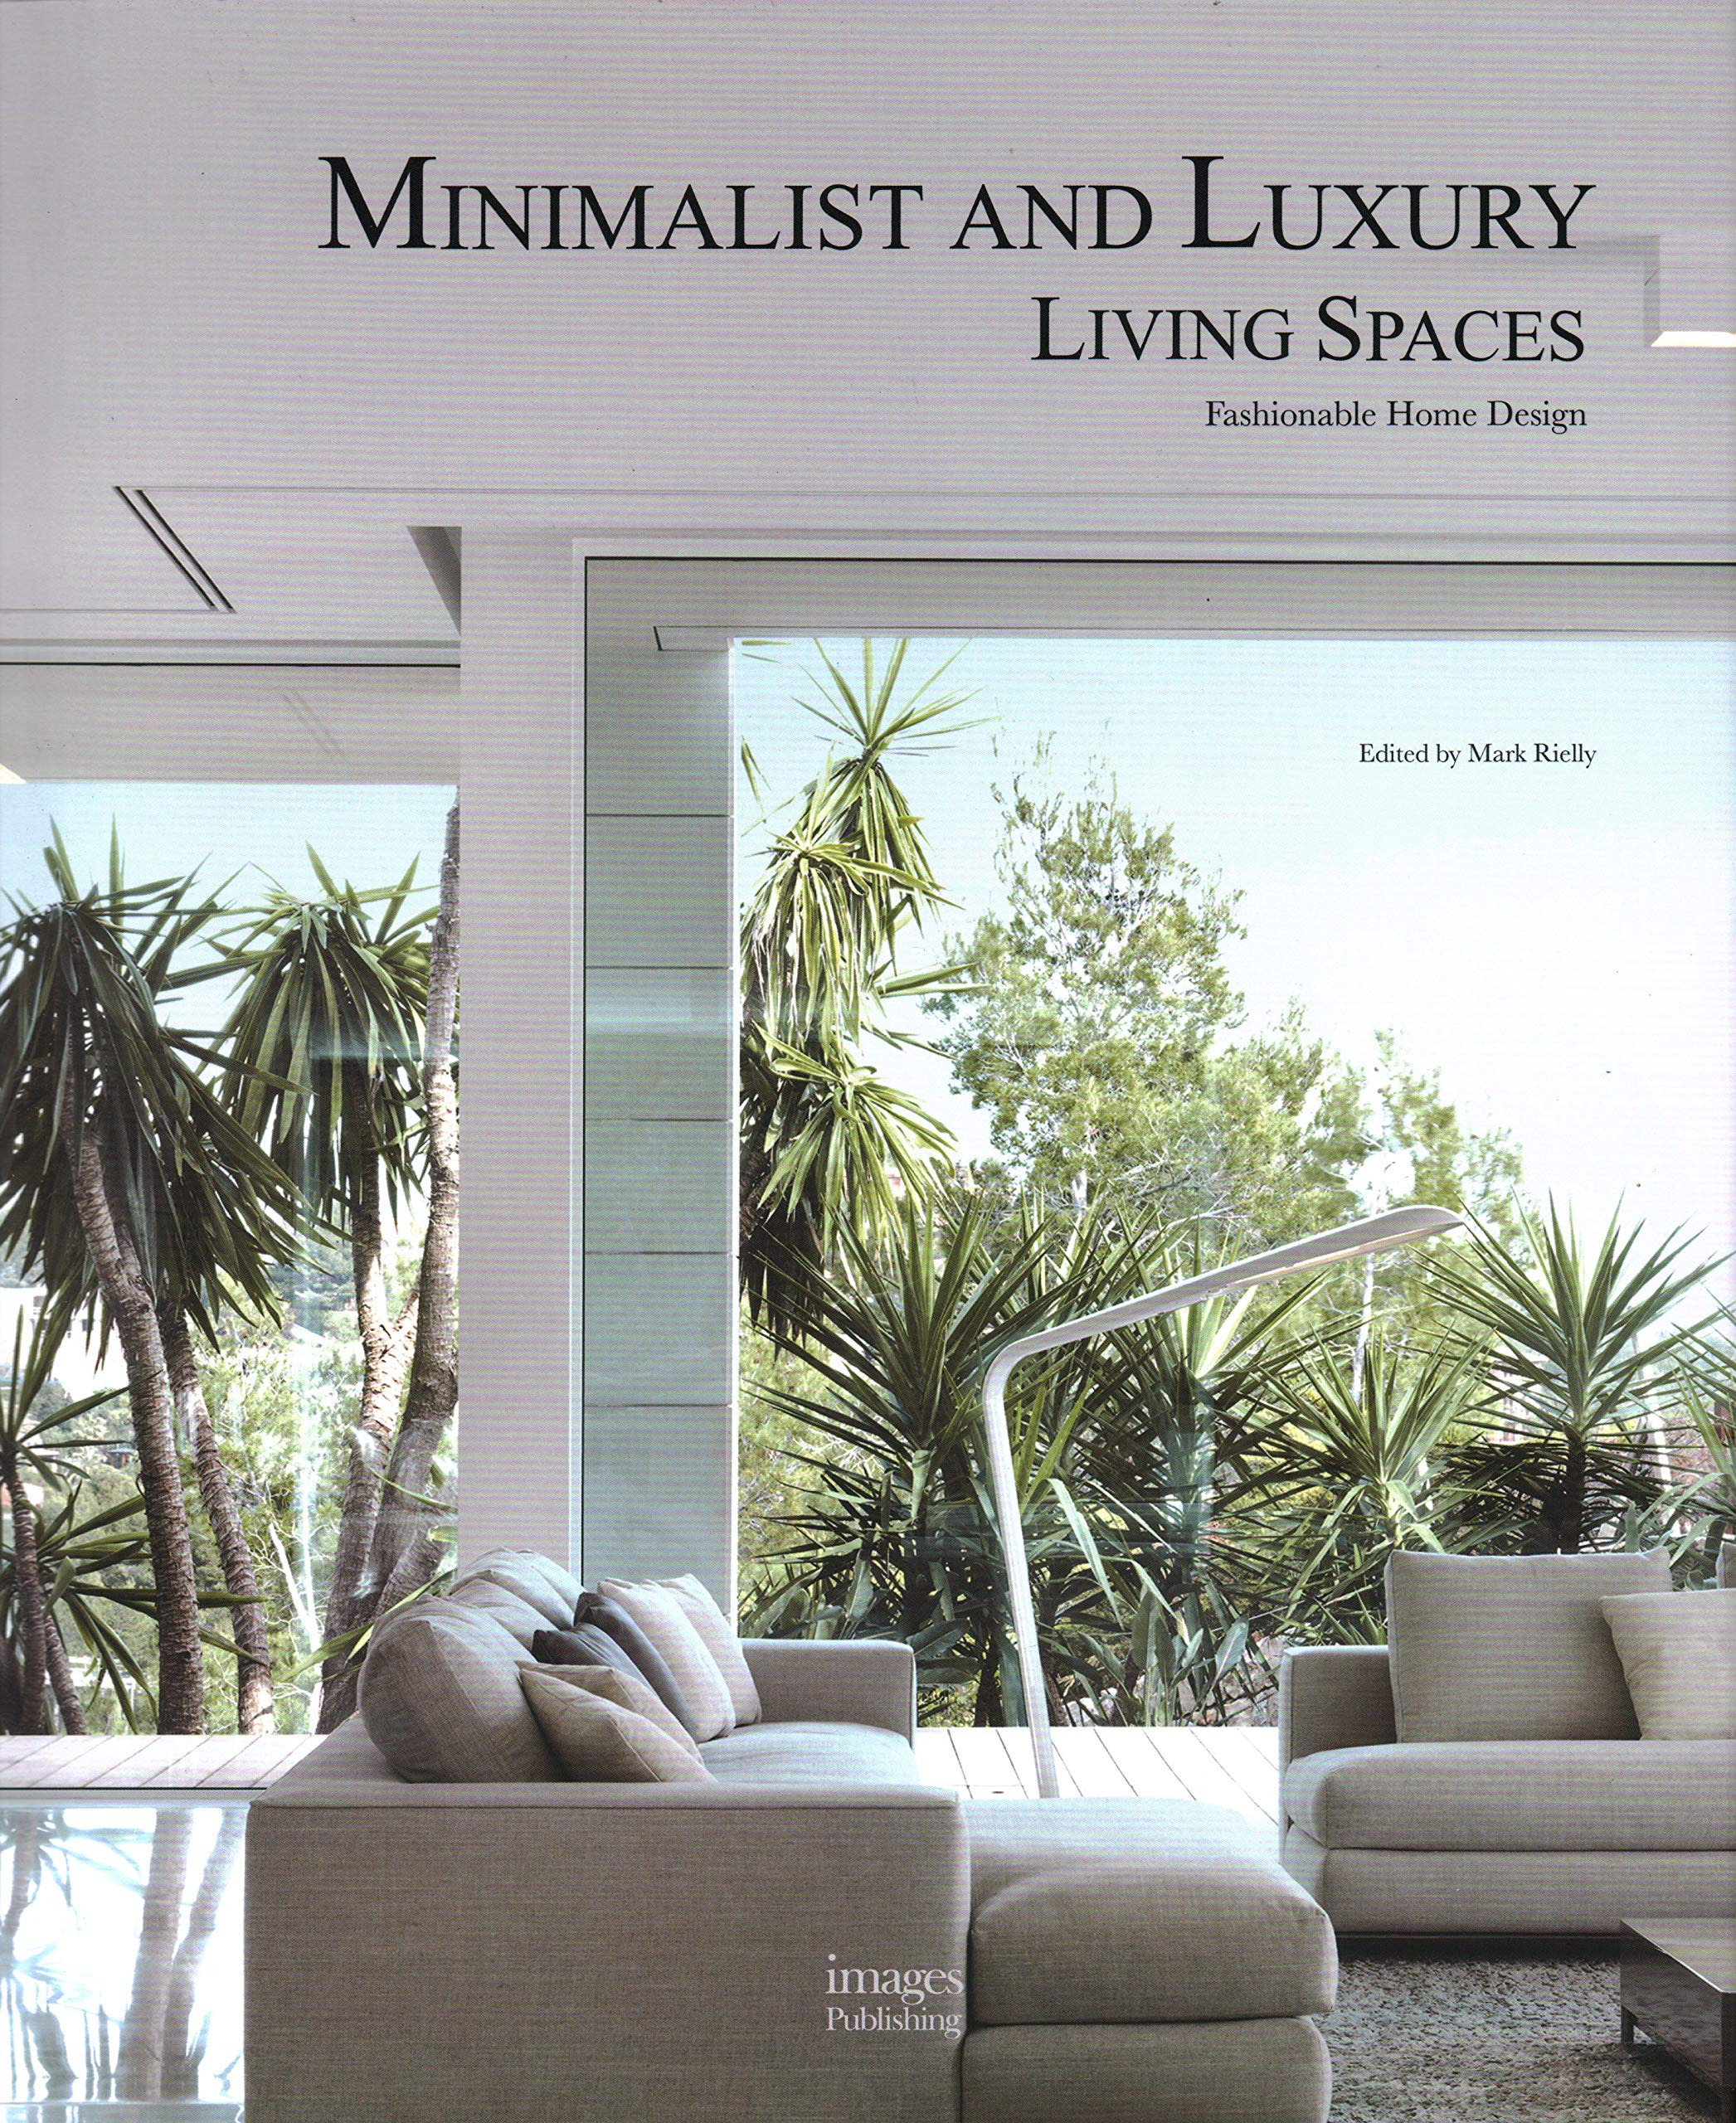 Luxury Home Design Pictures Luxury Minimalist and Luxury Living Spaces Fashionable Home Design